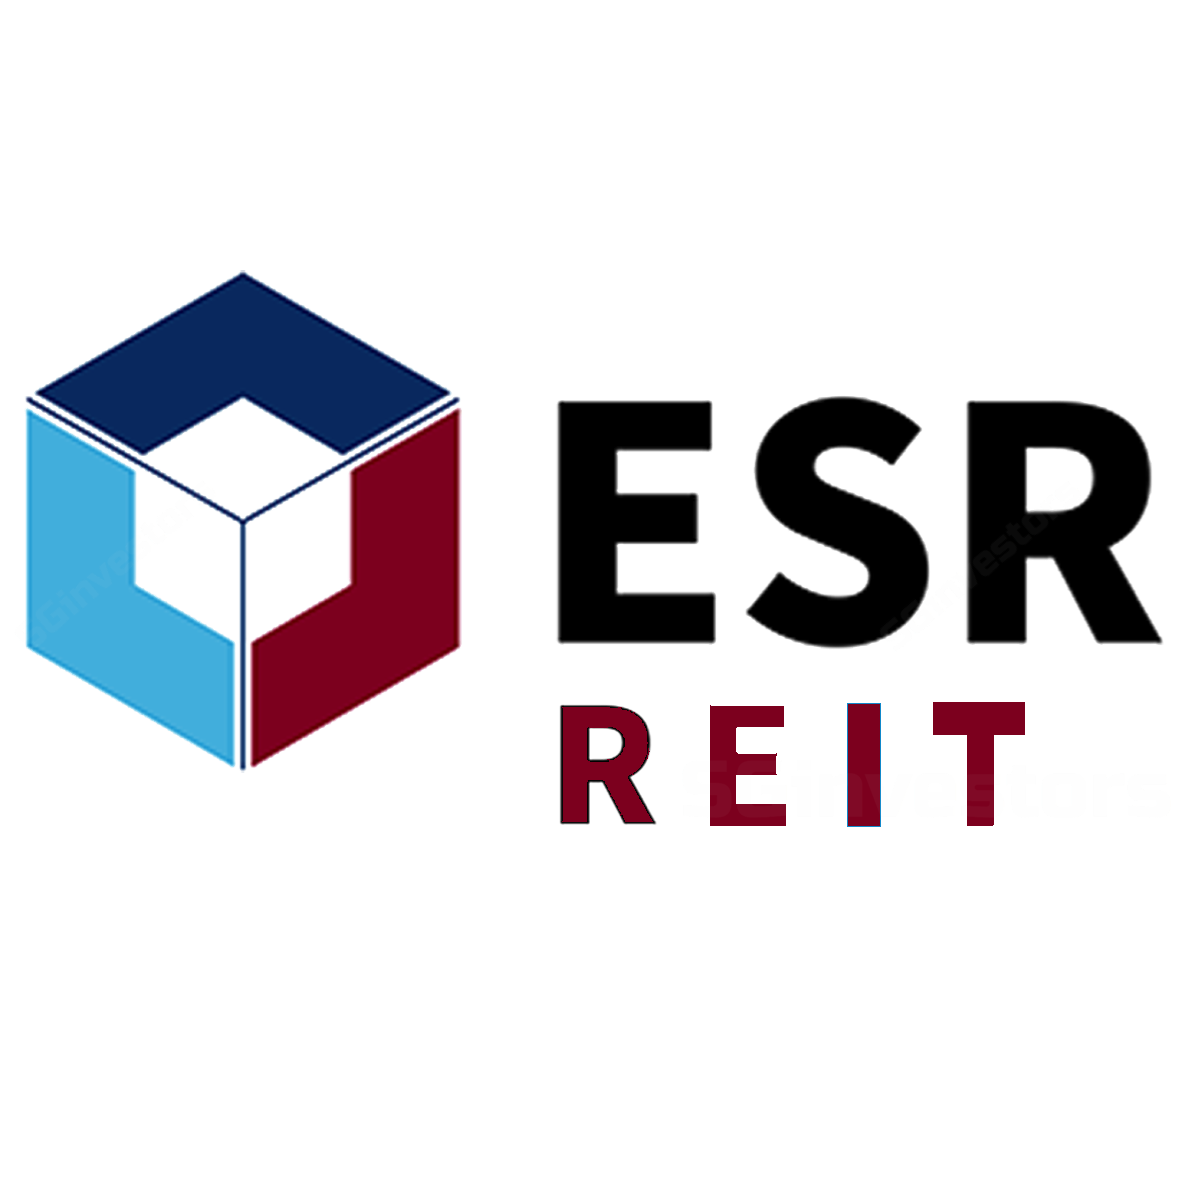 ESR REIT - DBS Vickers 2018-04-26: Seeking Value Accretive Acquisitions